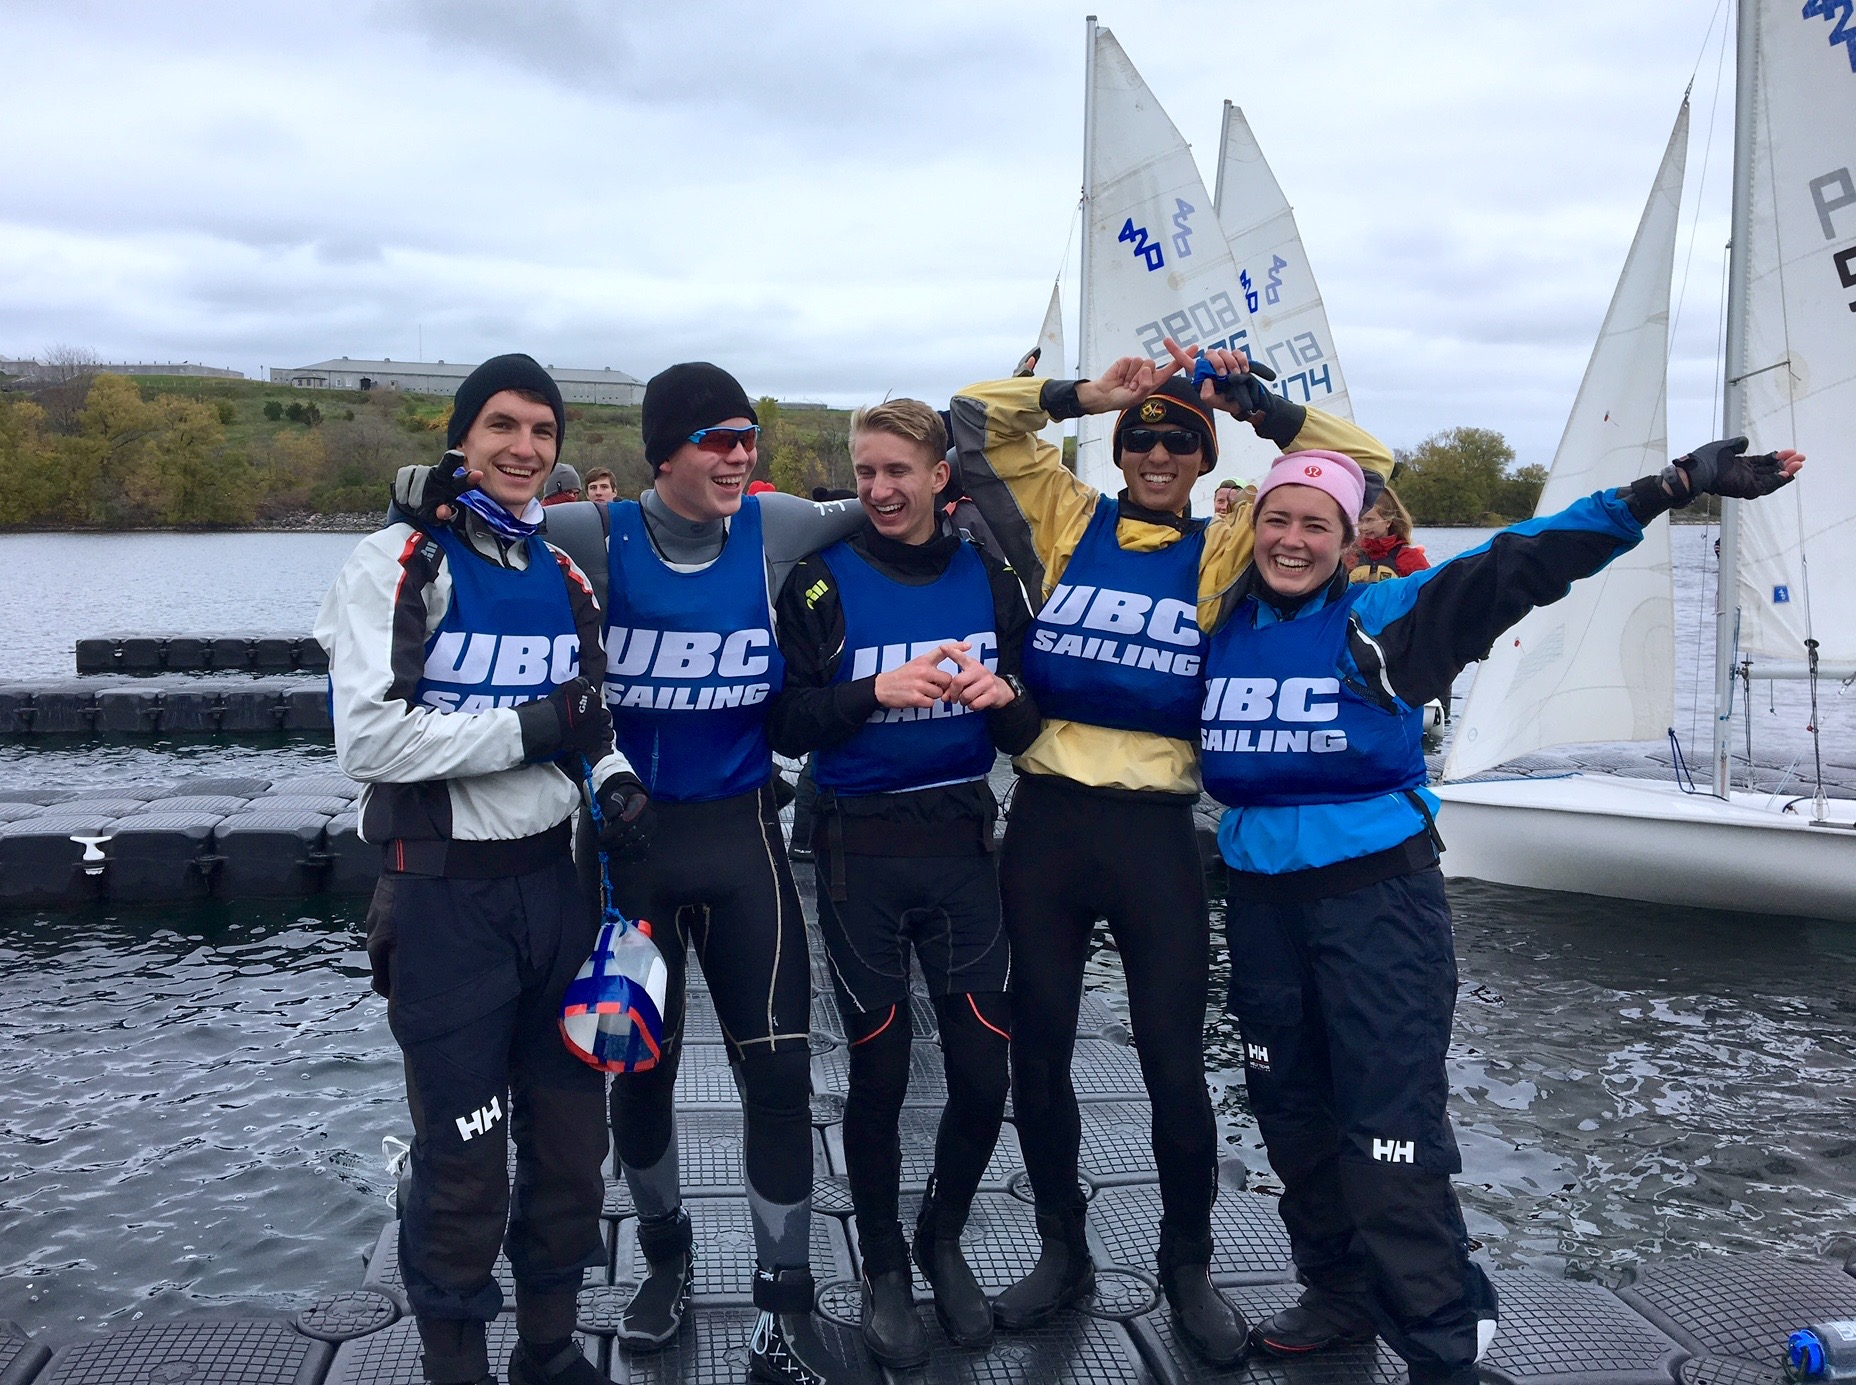 tsc_2016-17_sailing_blog_november_nats4